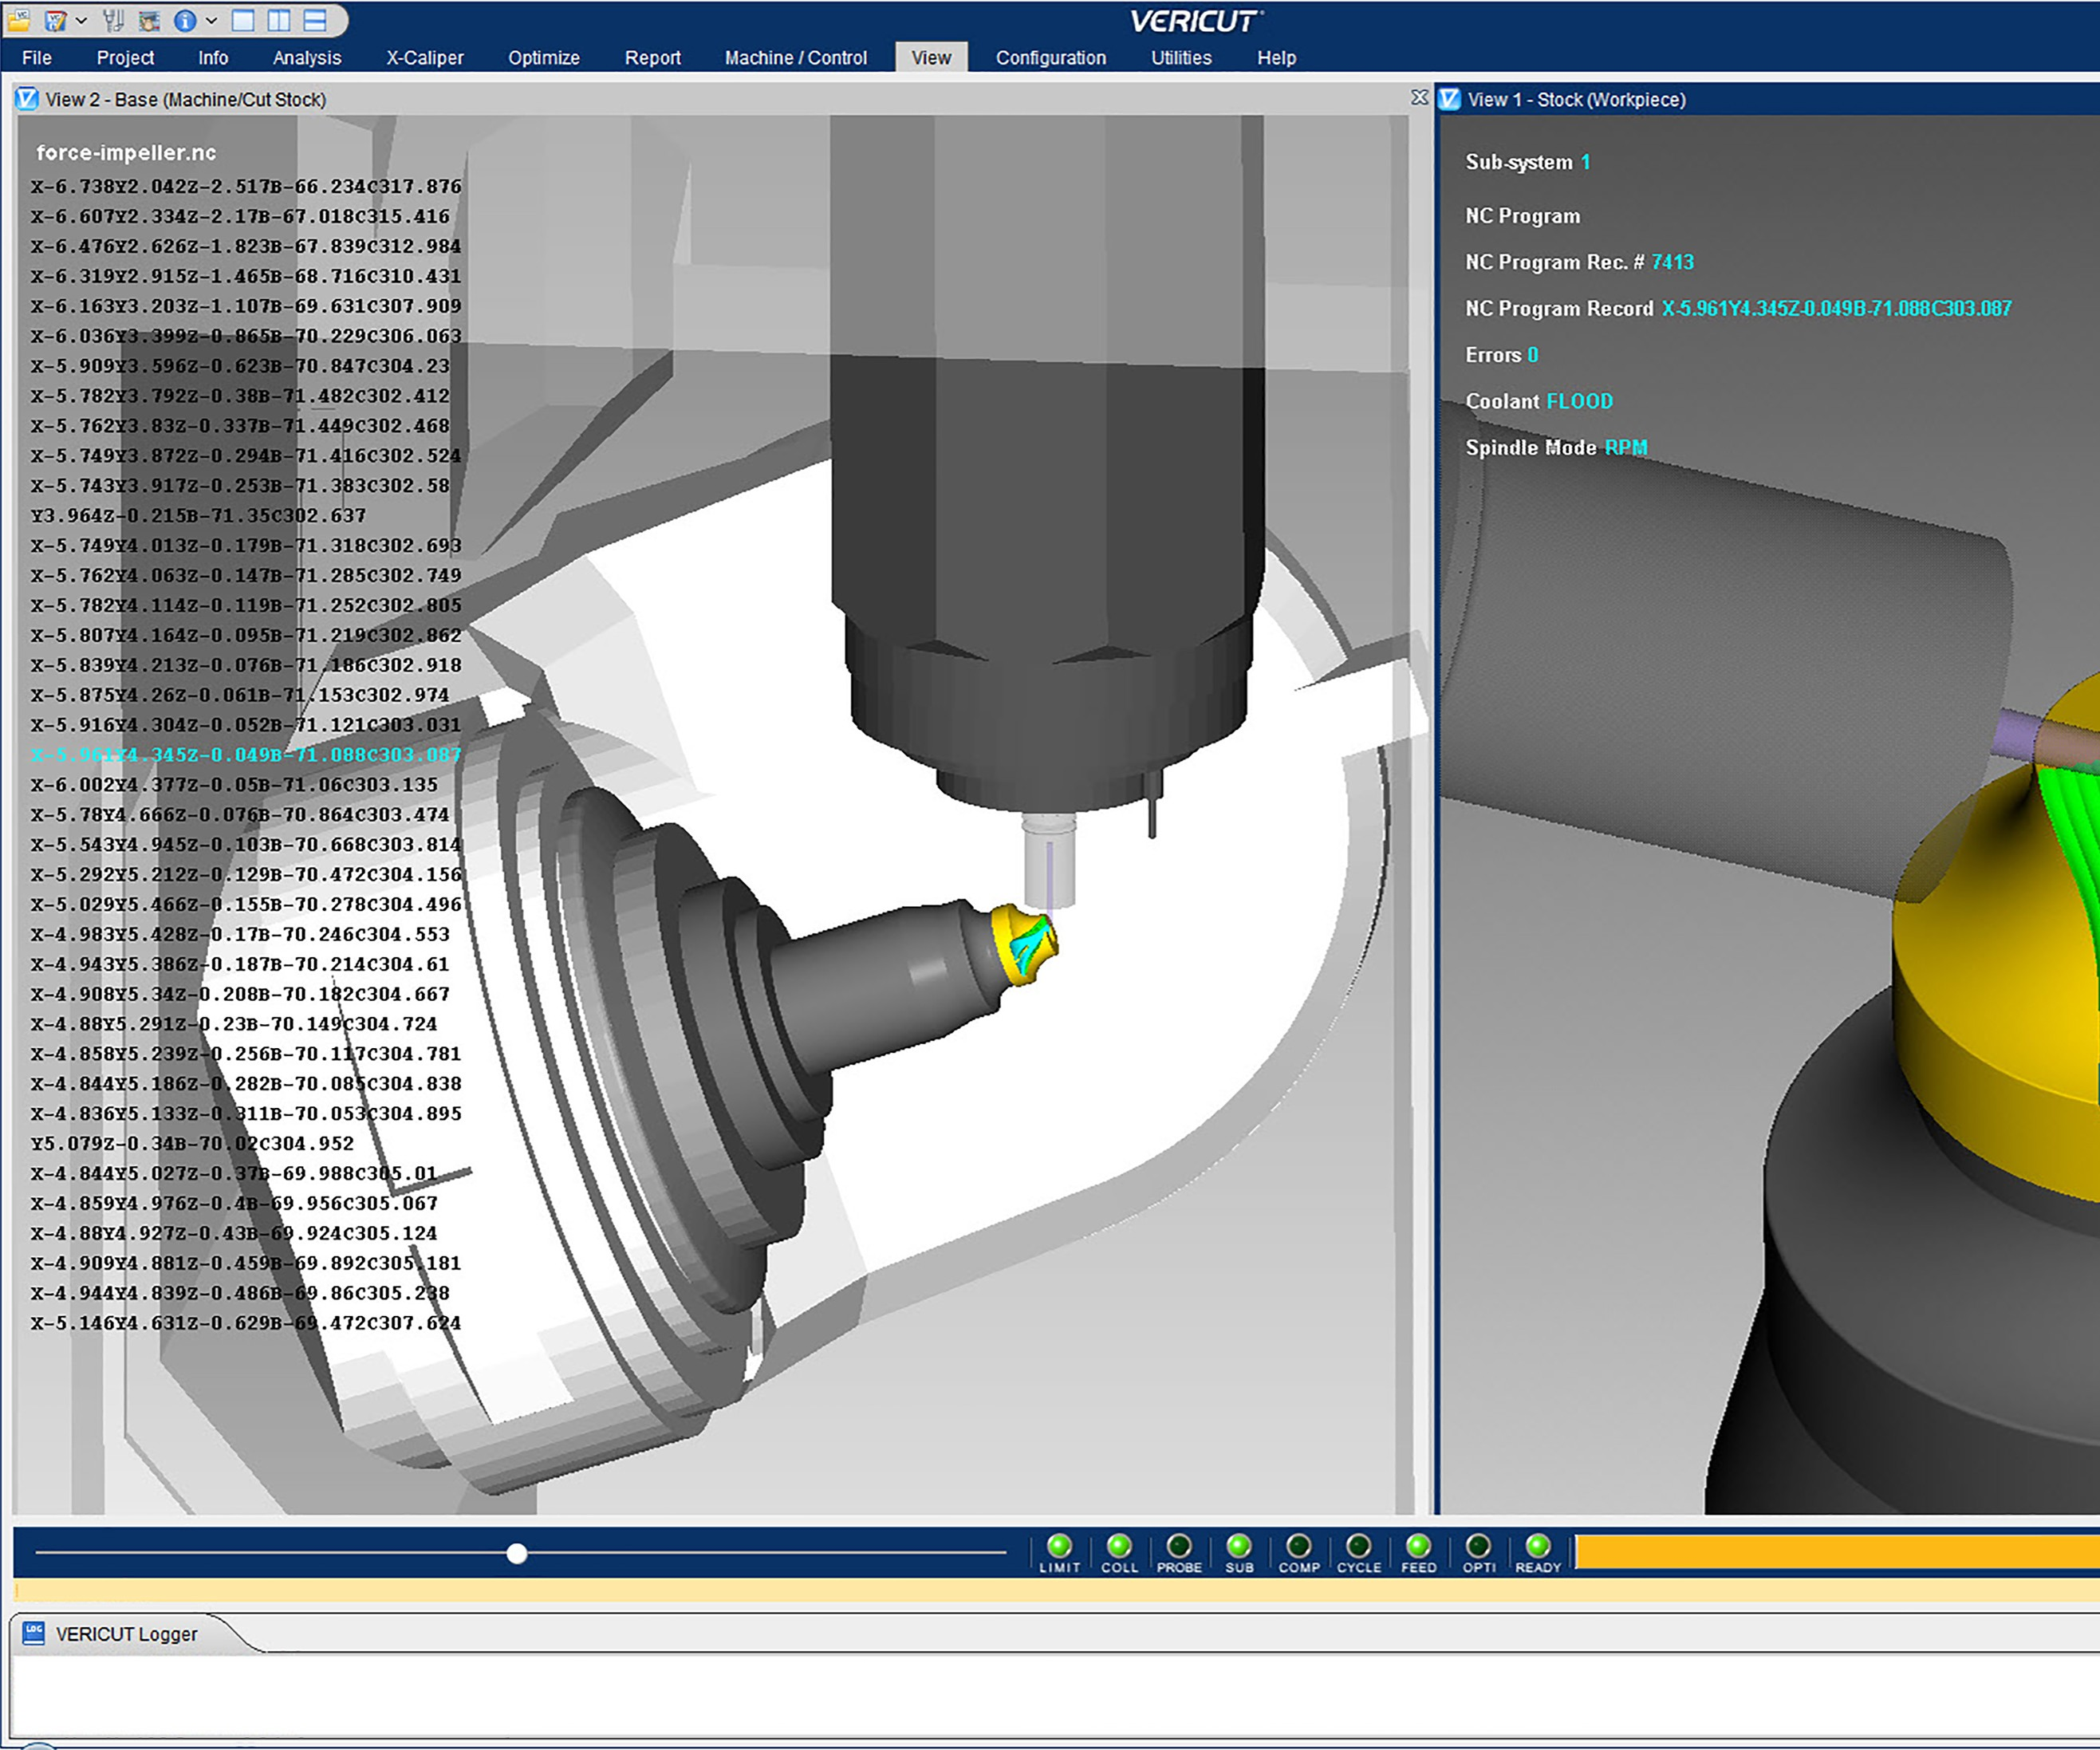 CGTech Vericut Version 8.2 CNC Simulation Software